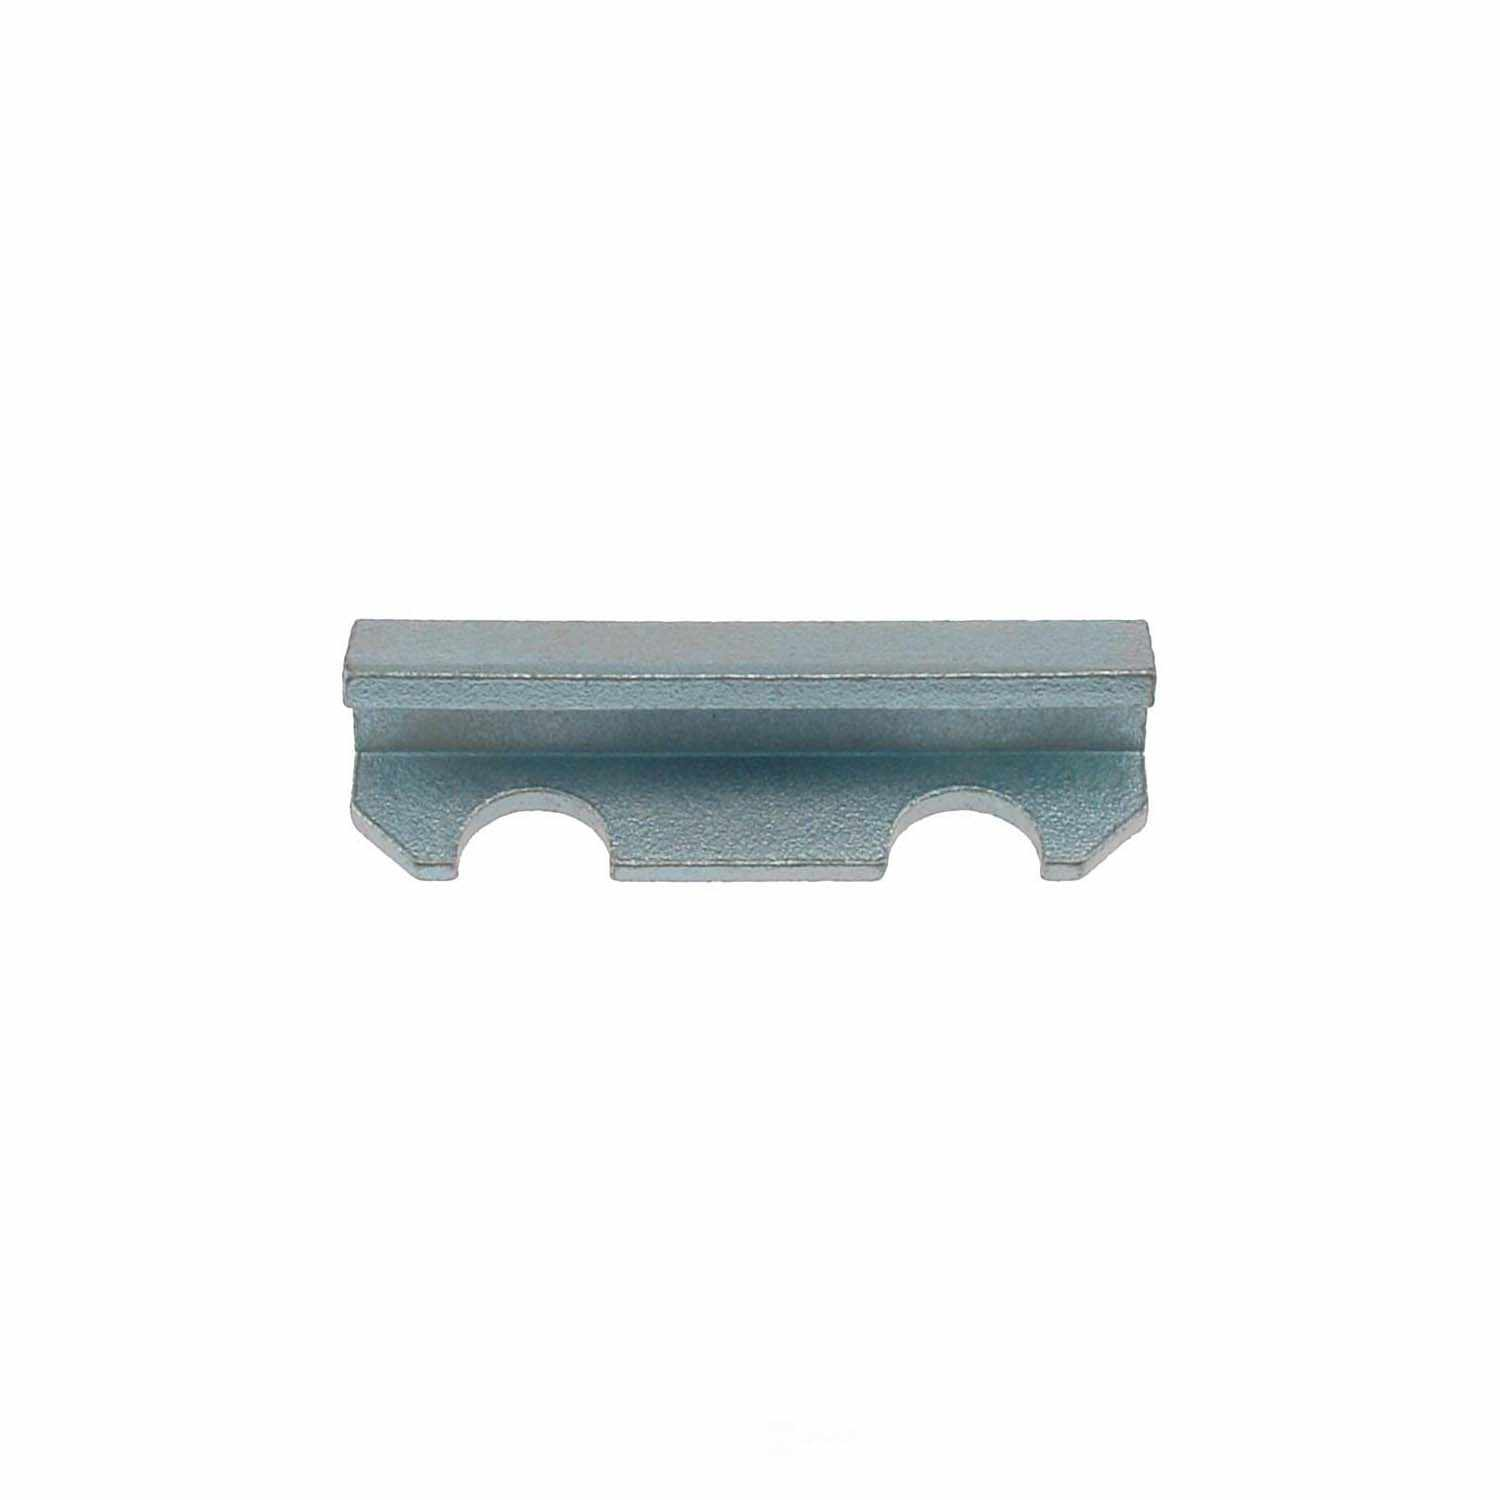 CARLSON QUALITY BRAKE PARTS - Dspl Pk Support Key - CRL H5303-2